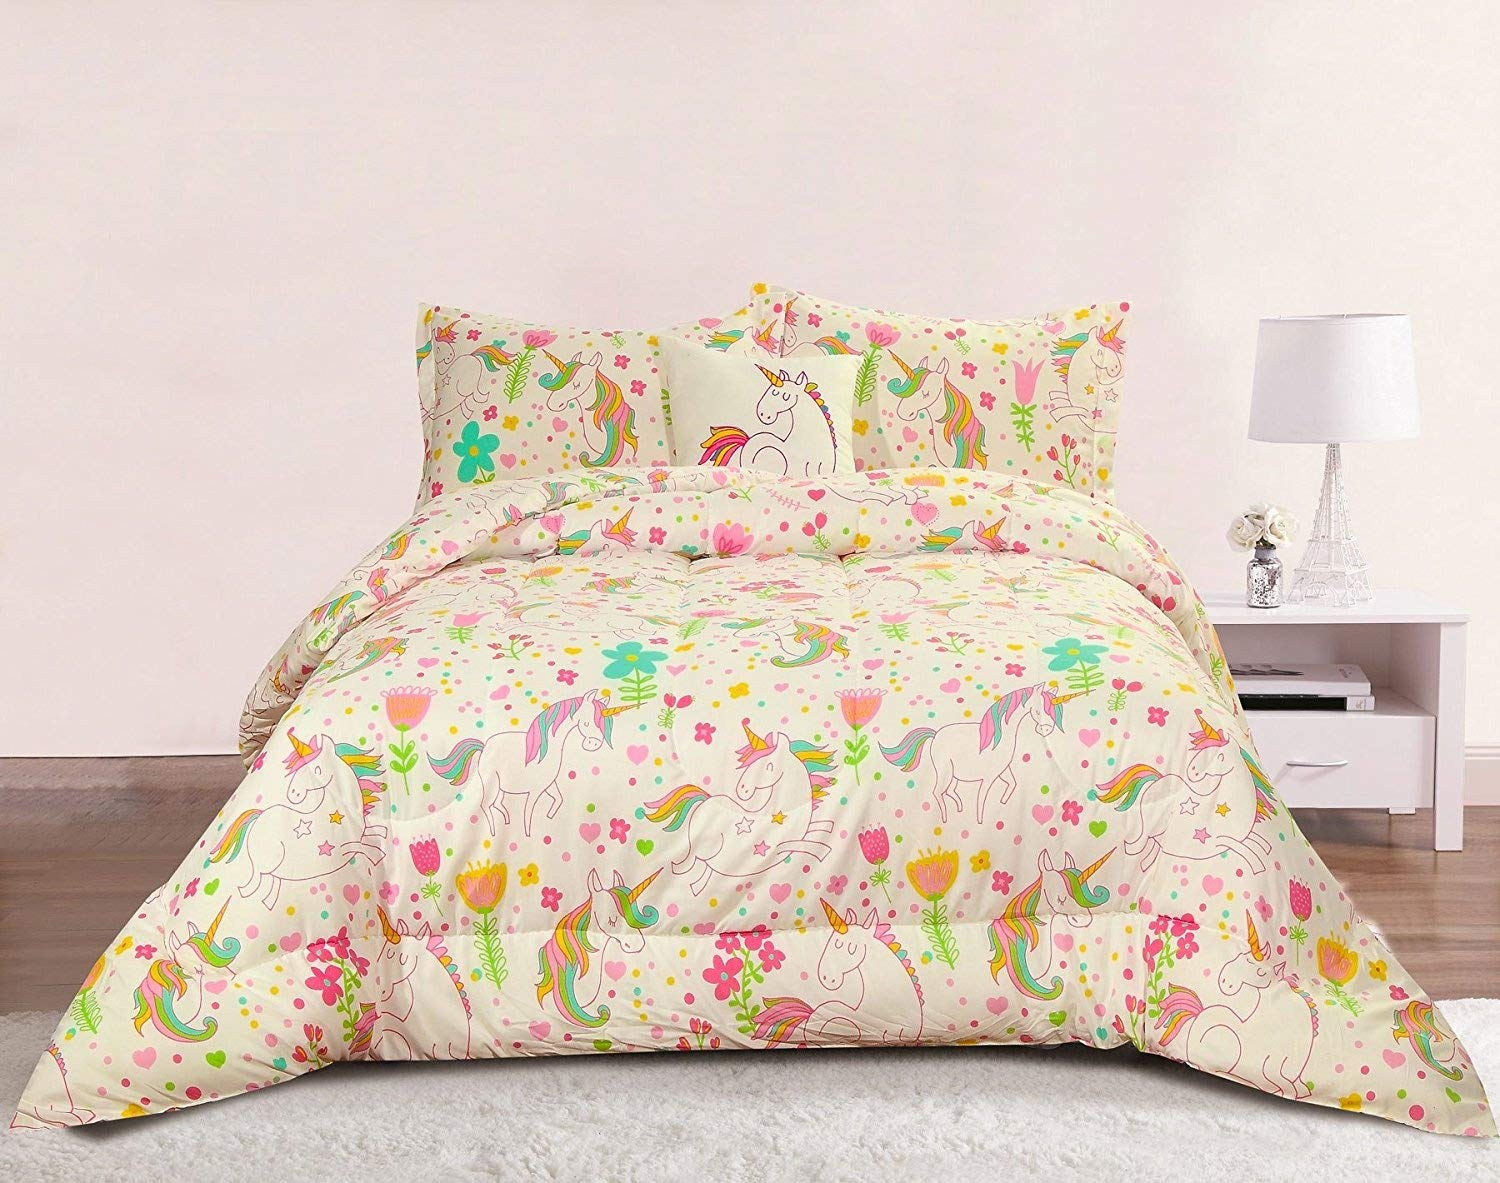 girls bedding Amazon.com: Unicorn Girls Bedding Full-Queen 4 Piece Comforter Bed Set,  Pastel Heart Floral Polka Dot: Home u0026 Kitchen